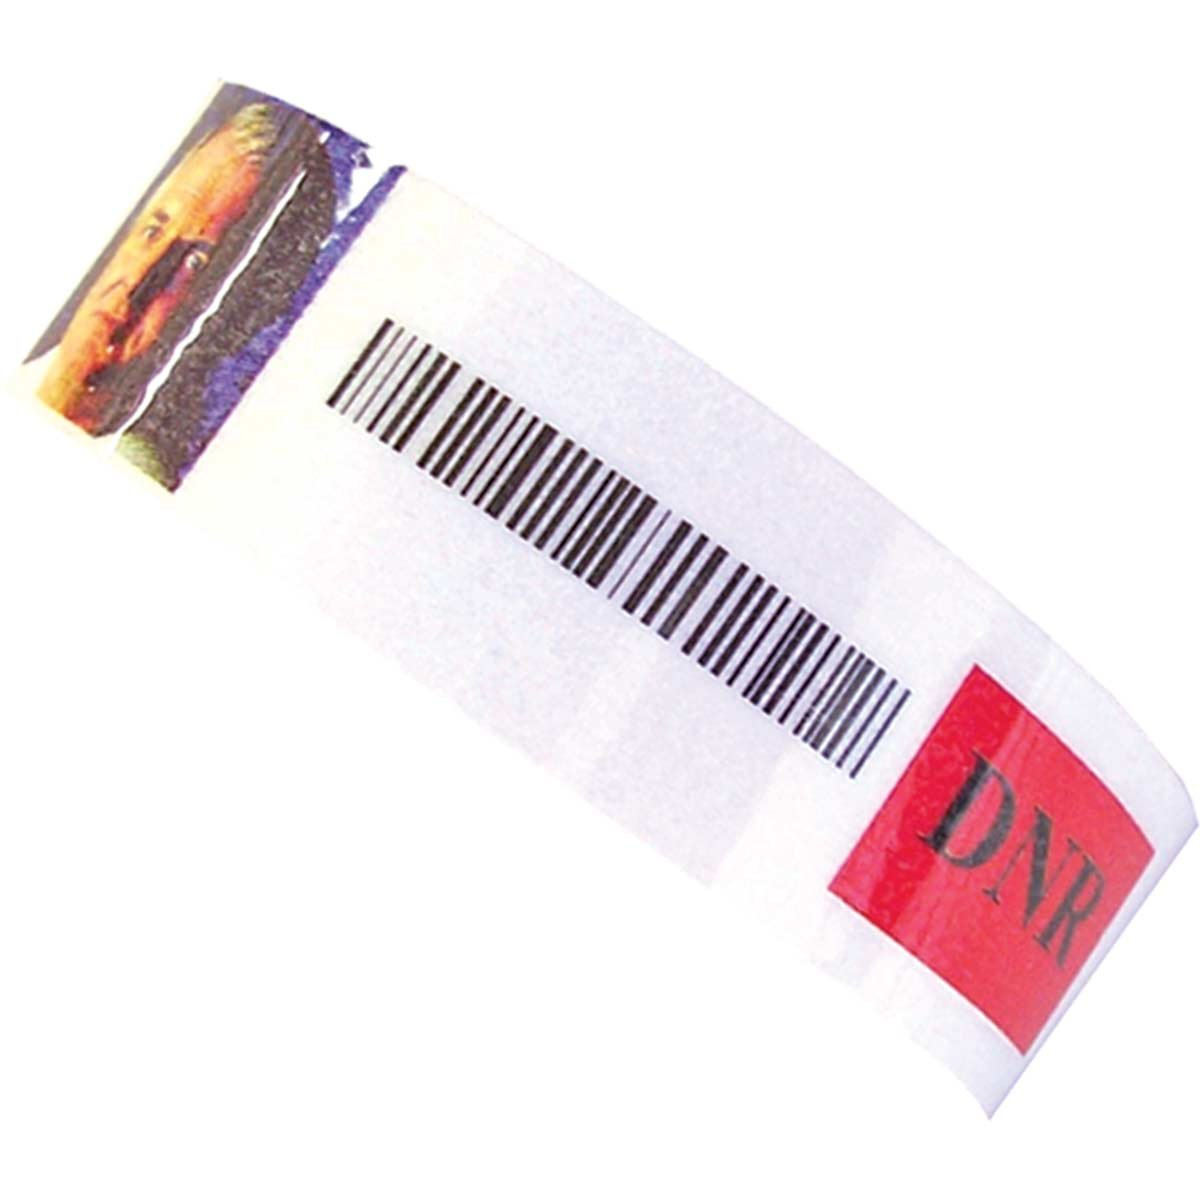 PDC Healthcare Confident EMARWB1 Paper Adult Wristband and Labels for Laser Printers, Supports Text, Adhesive Closure, White (Case of 20000)